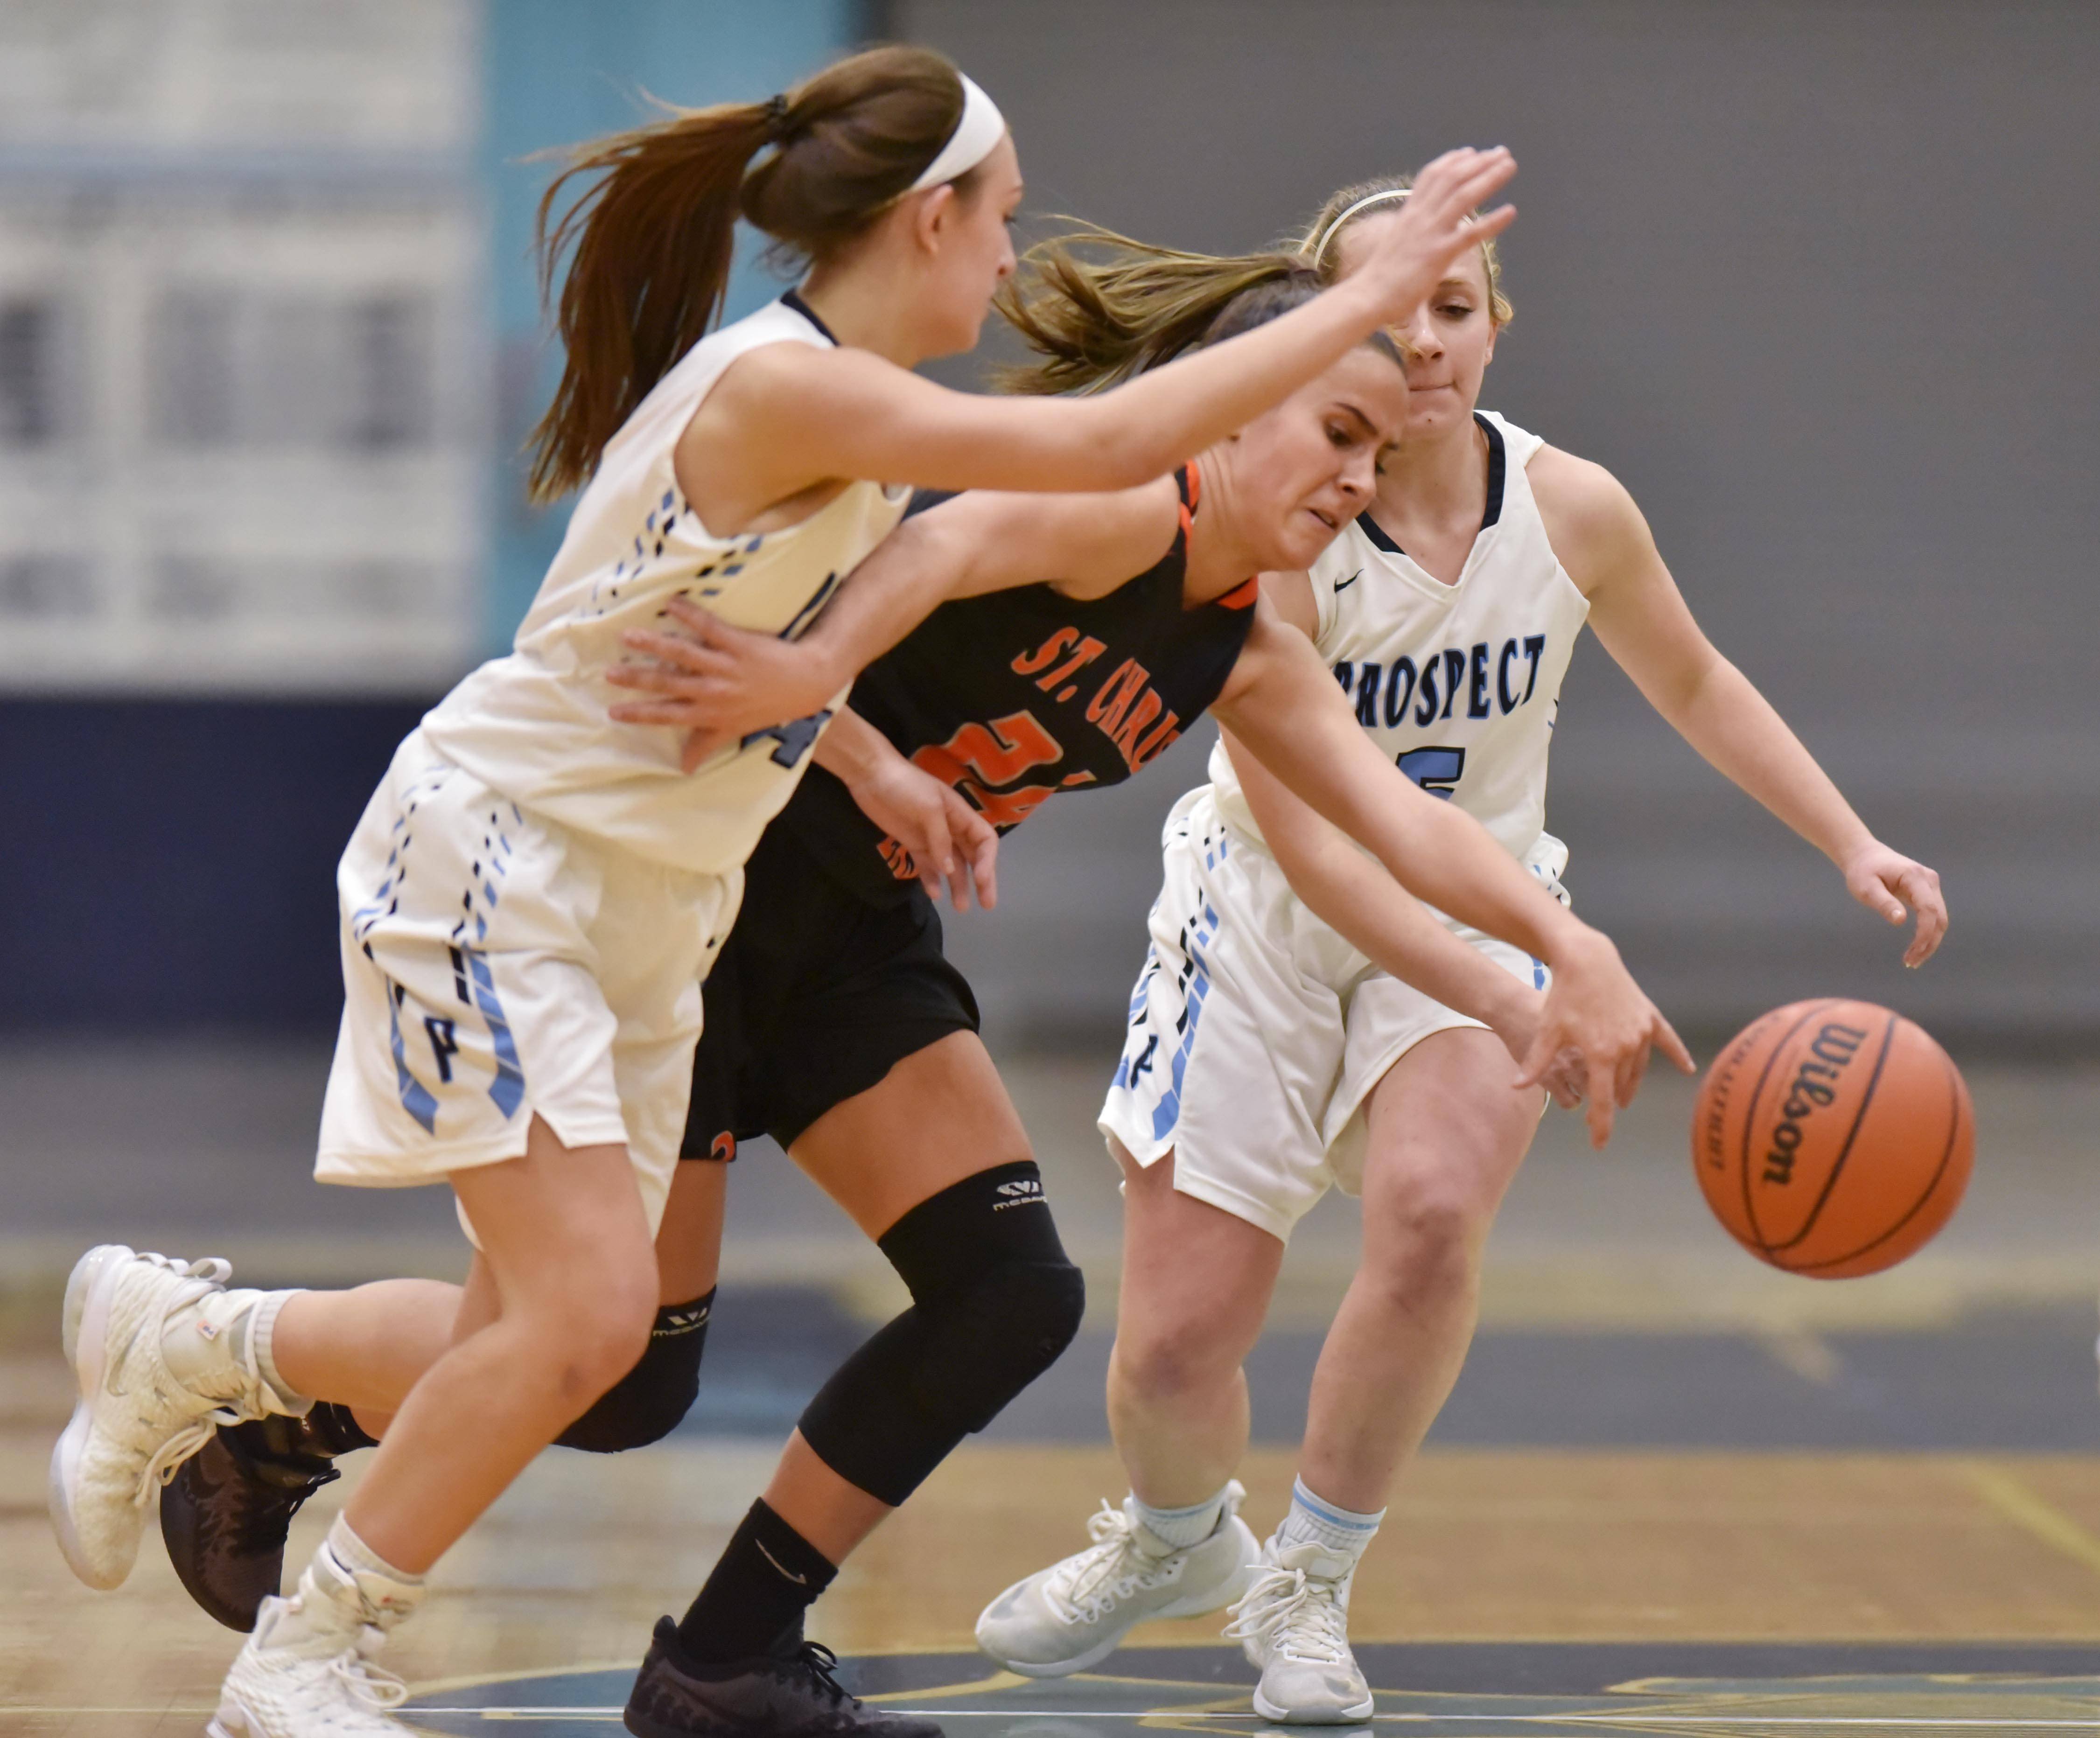 St. Charles East's Ashley DiOrio battles Prospect's Stephanie Kowalczyk and Helen Siavelis for the ball Wednesday in a girls basketball game in Mount Prospect.